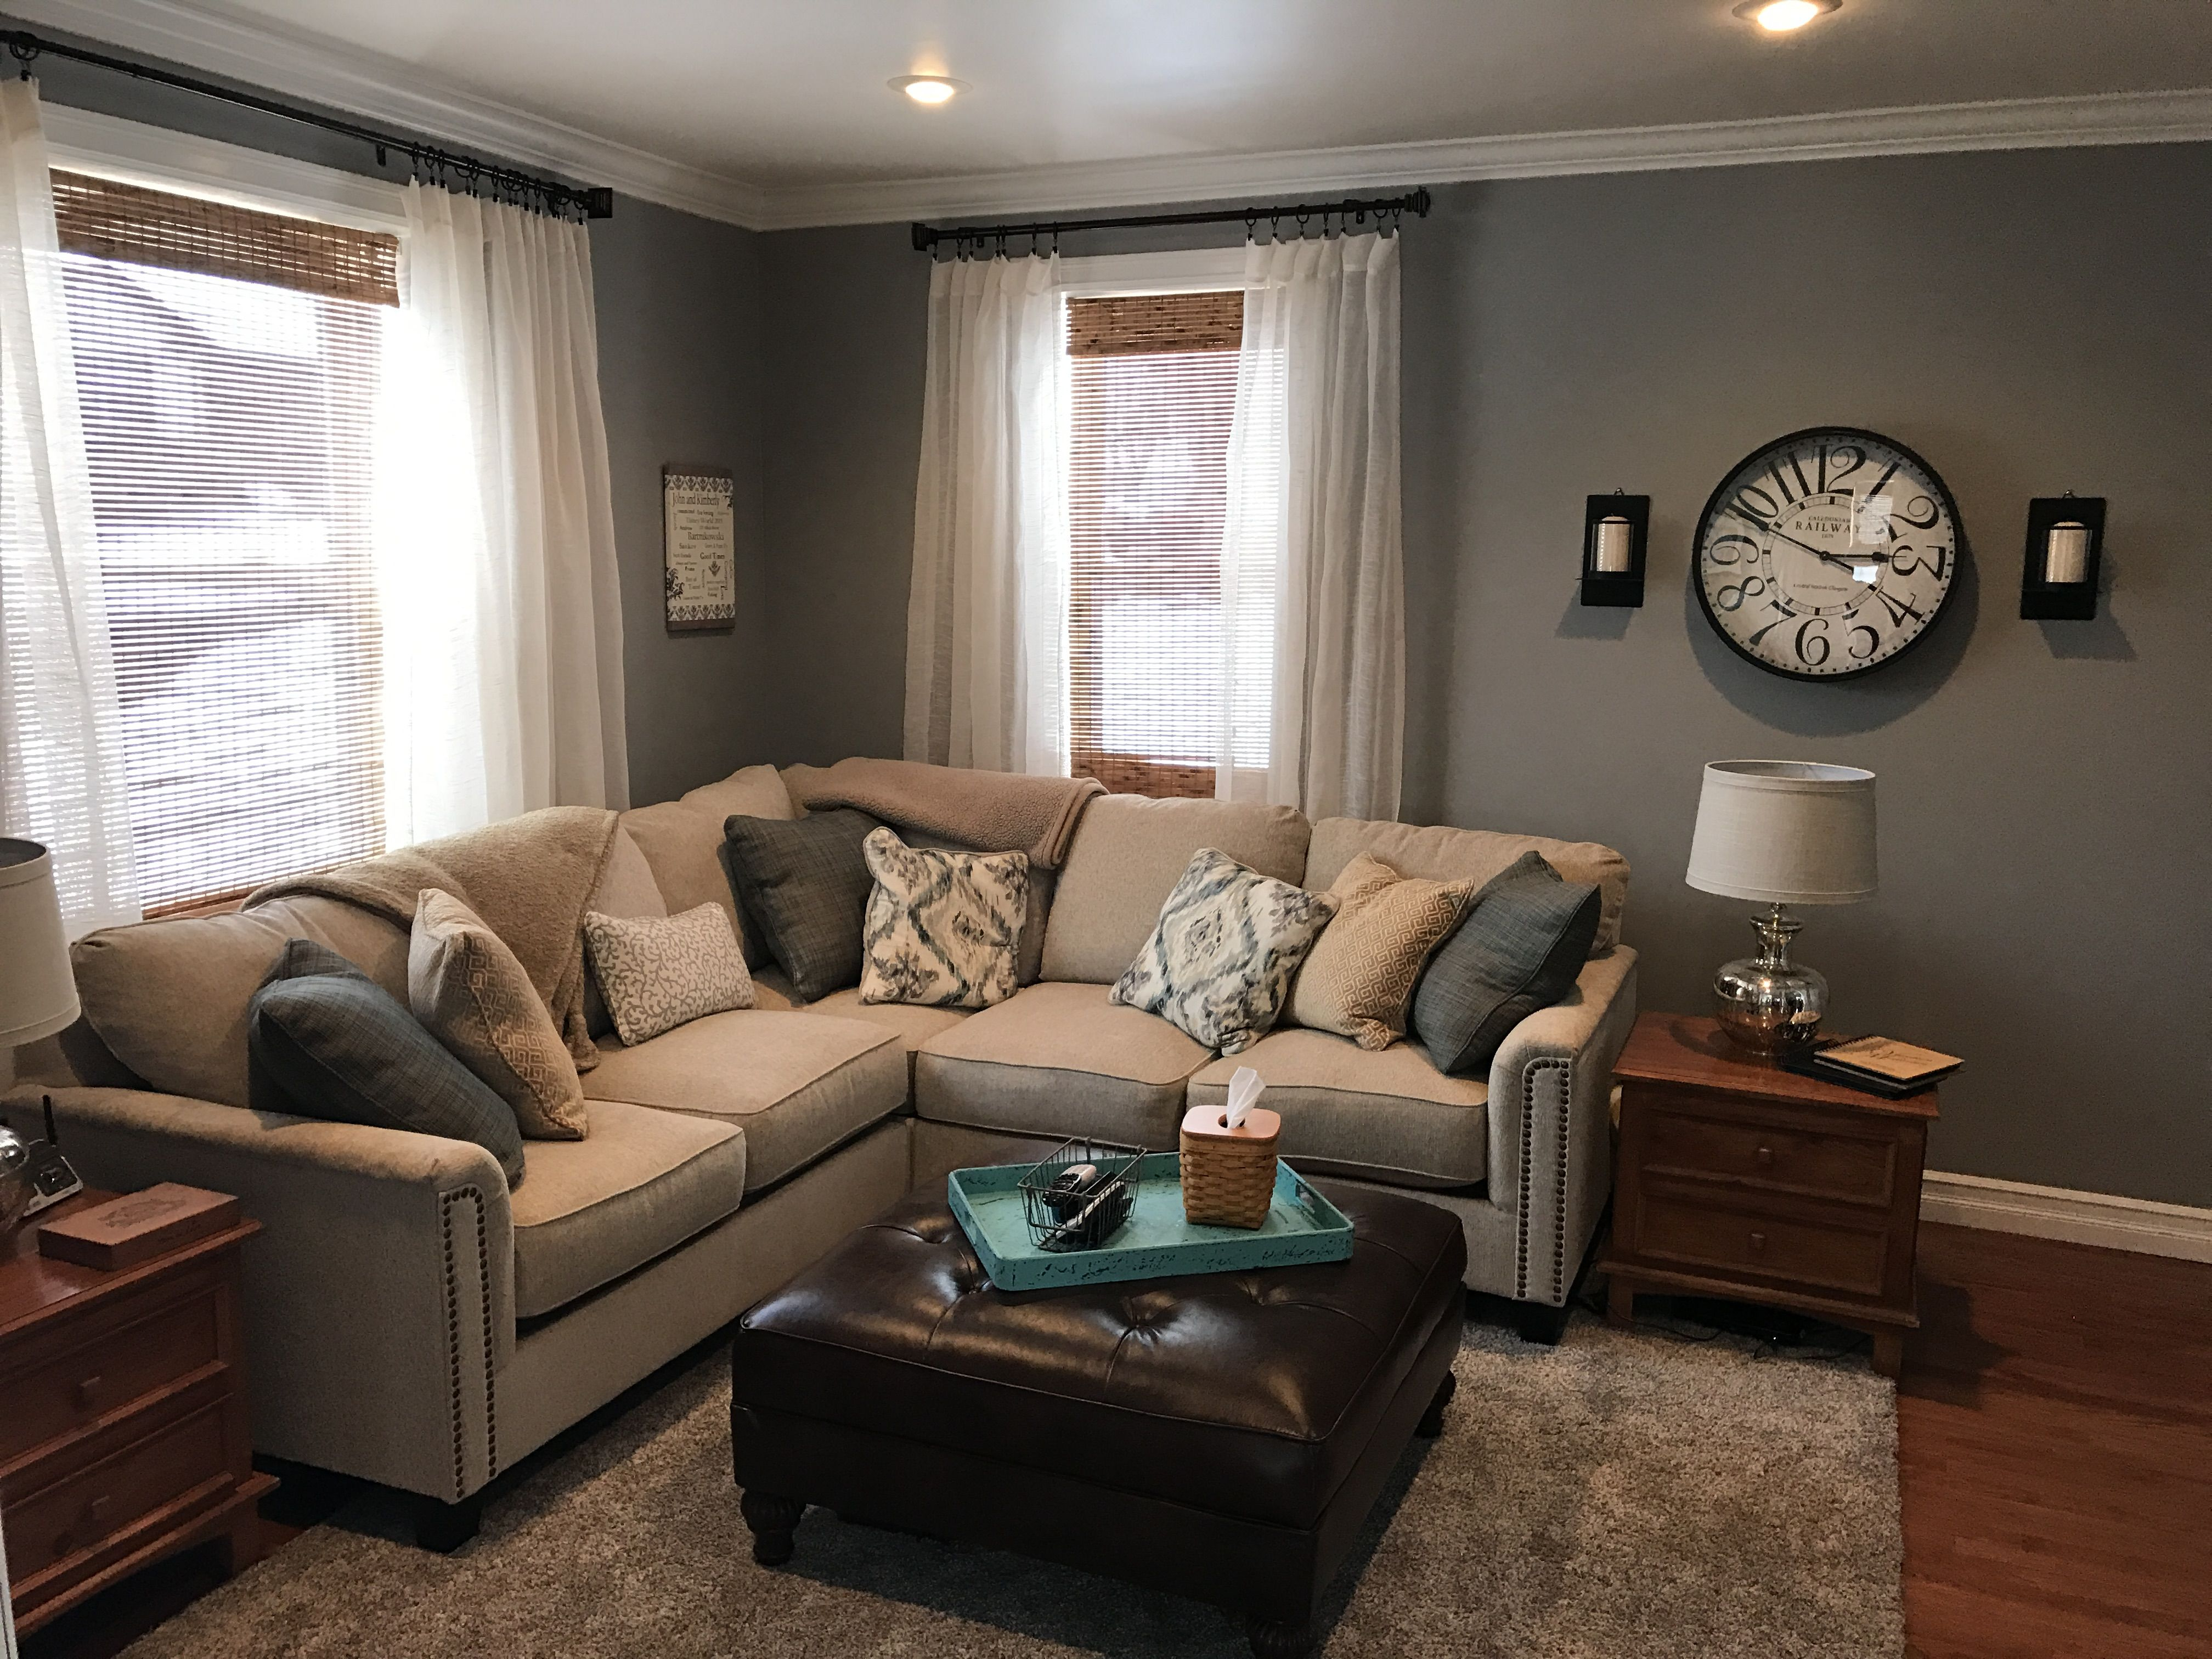 Behr Downtown Gray cream couch  family room  Cream